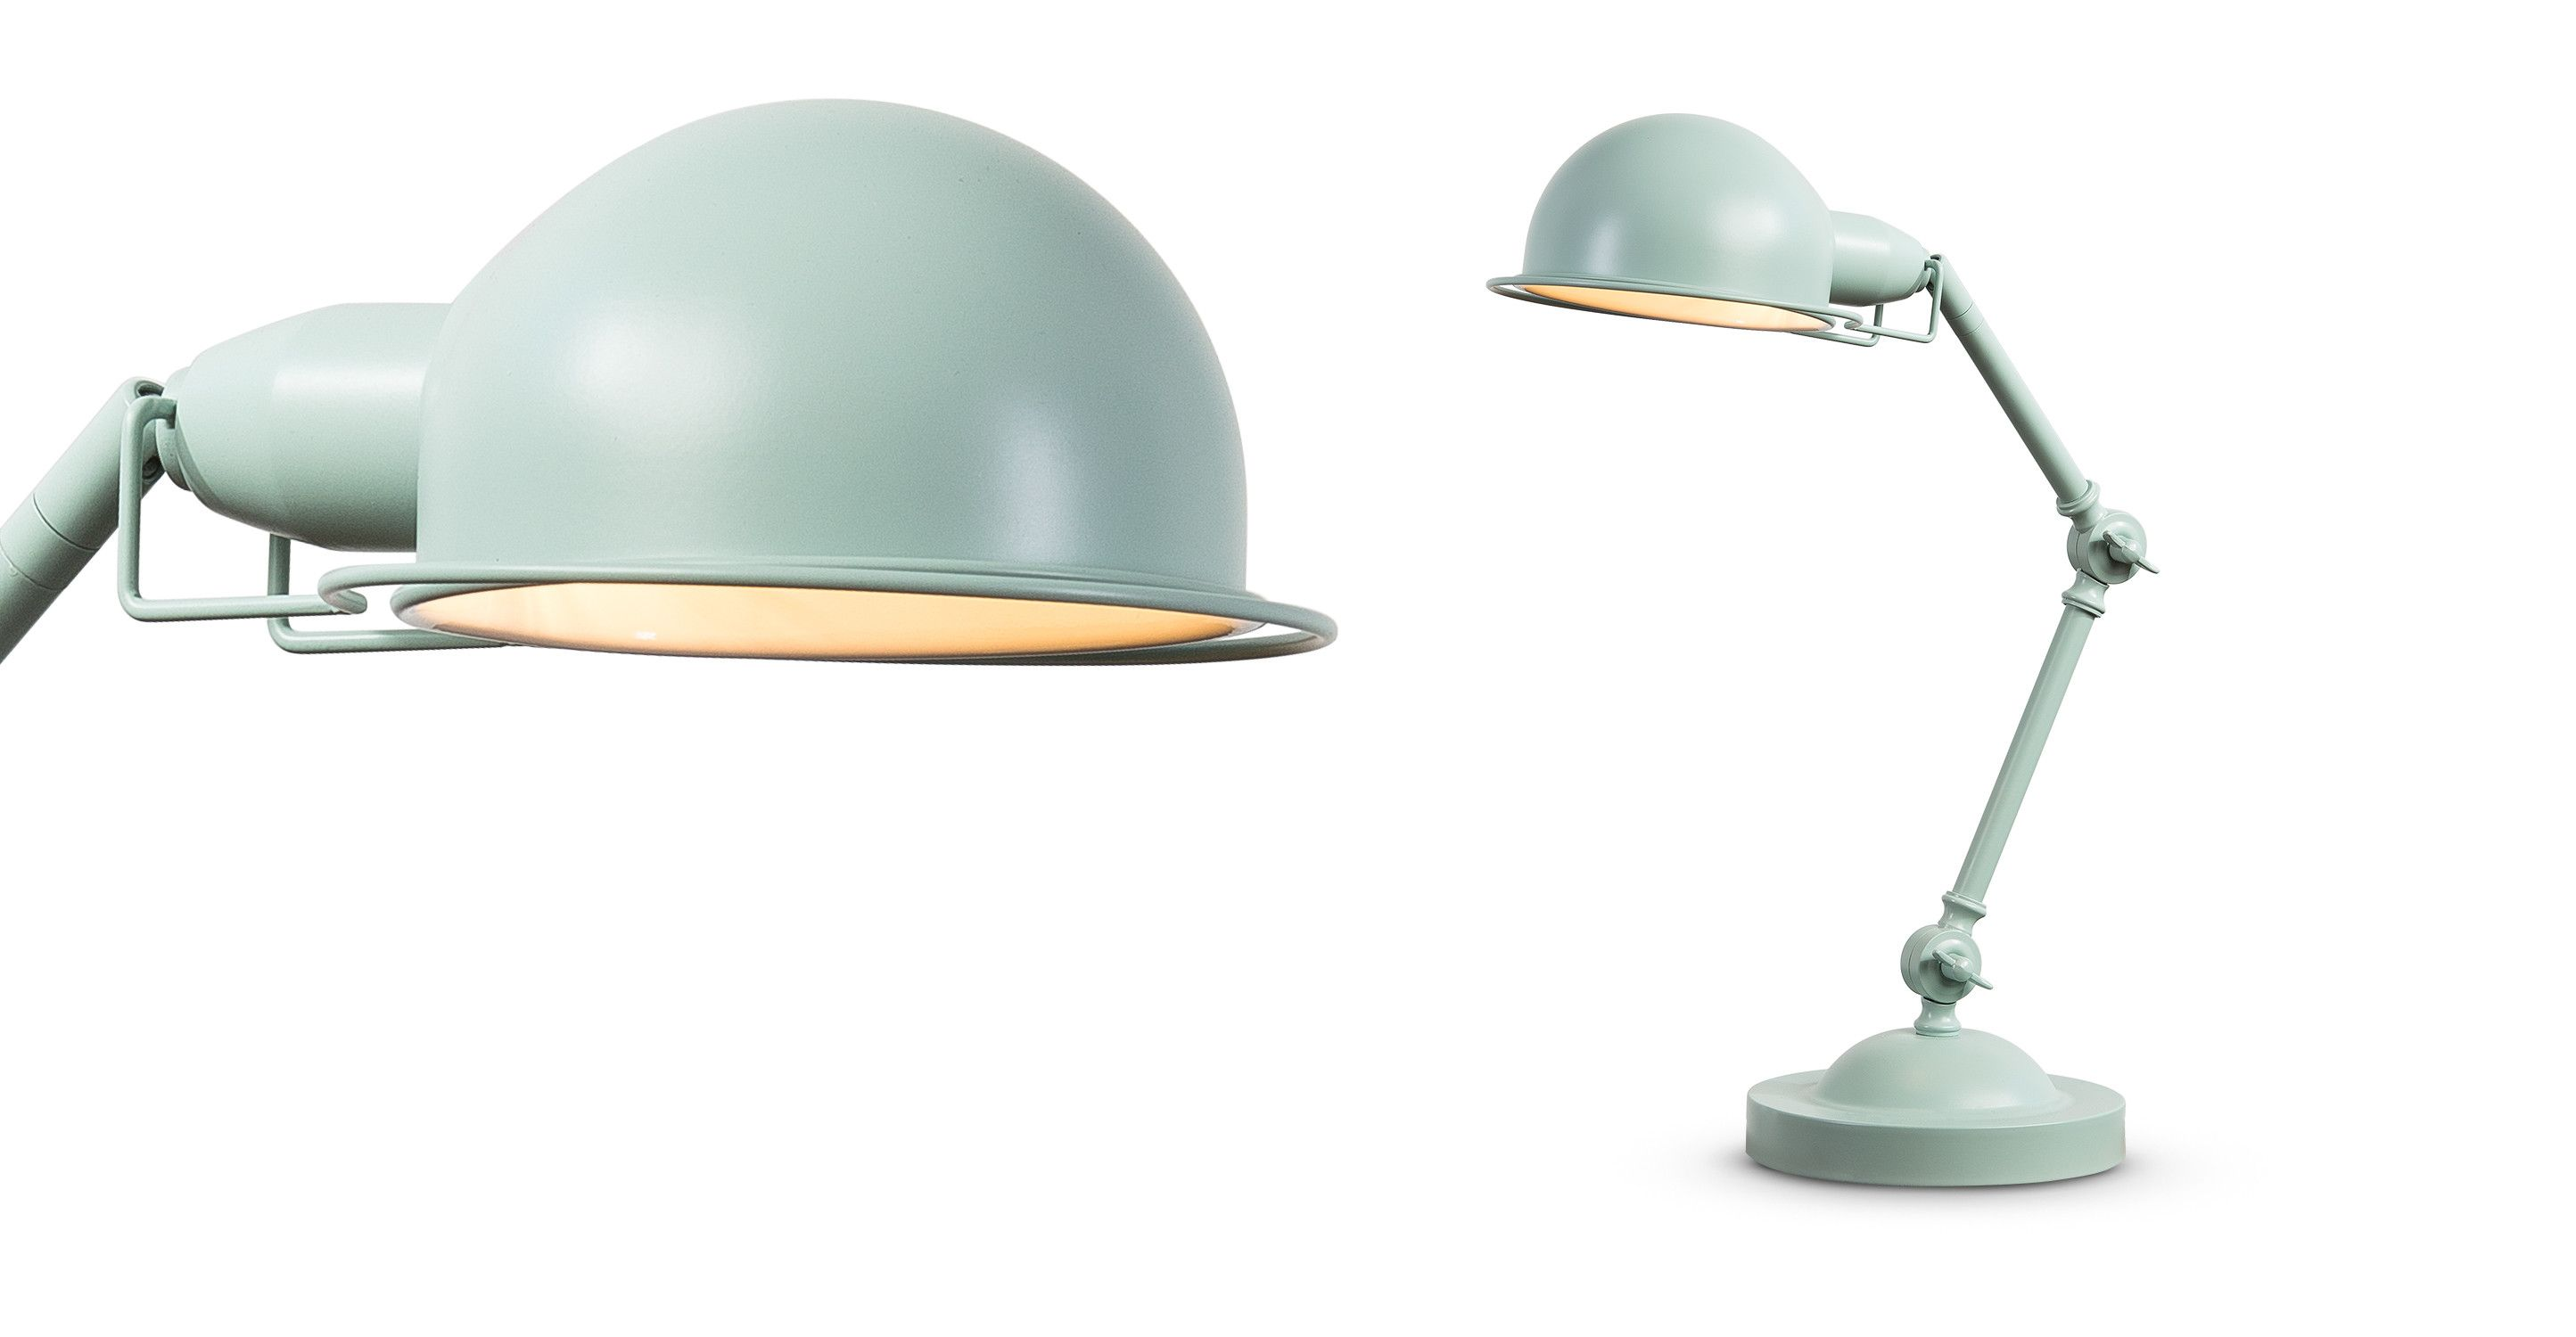 Made table lamp 26 off duck egg now on sale blue express jenkins table lamp duck egg made aloadofball Image collections